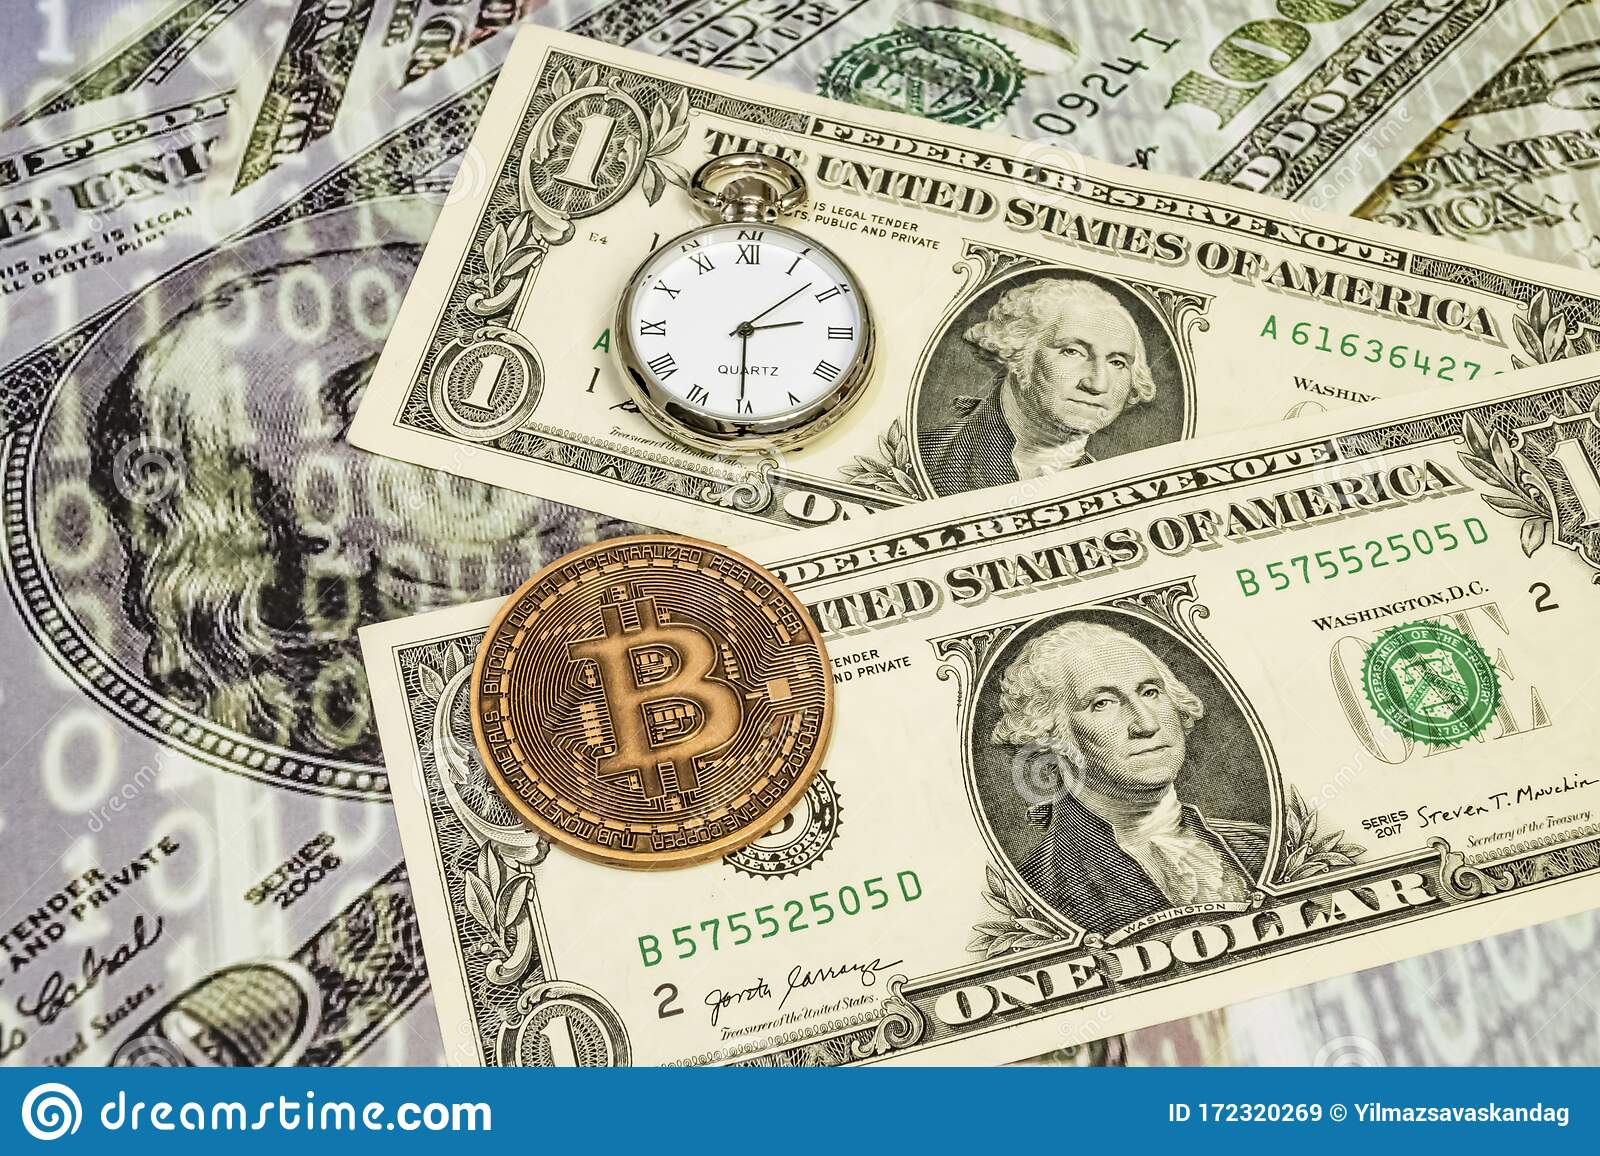 types of currency like bitcoin